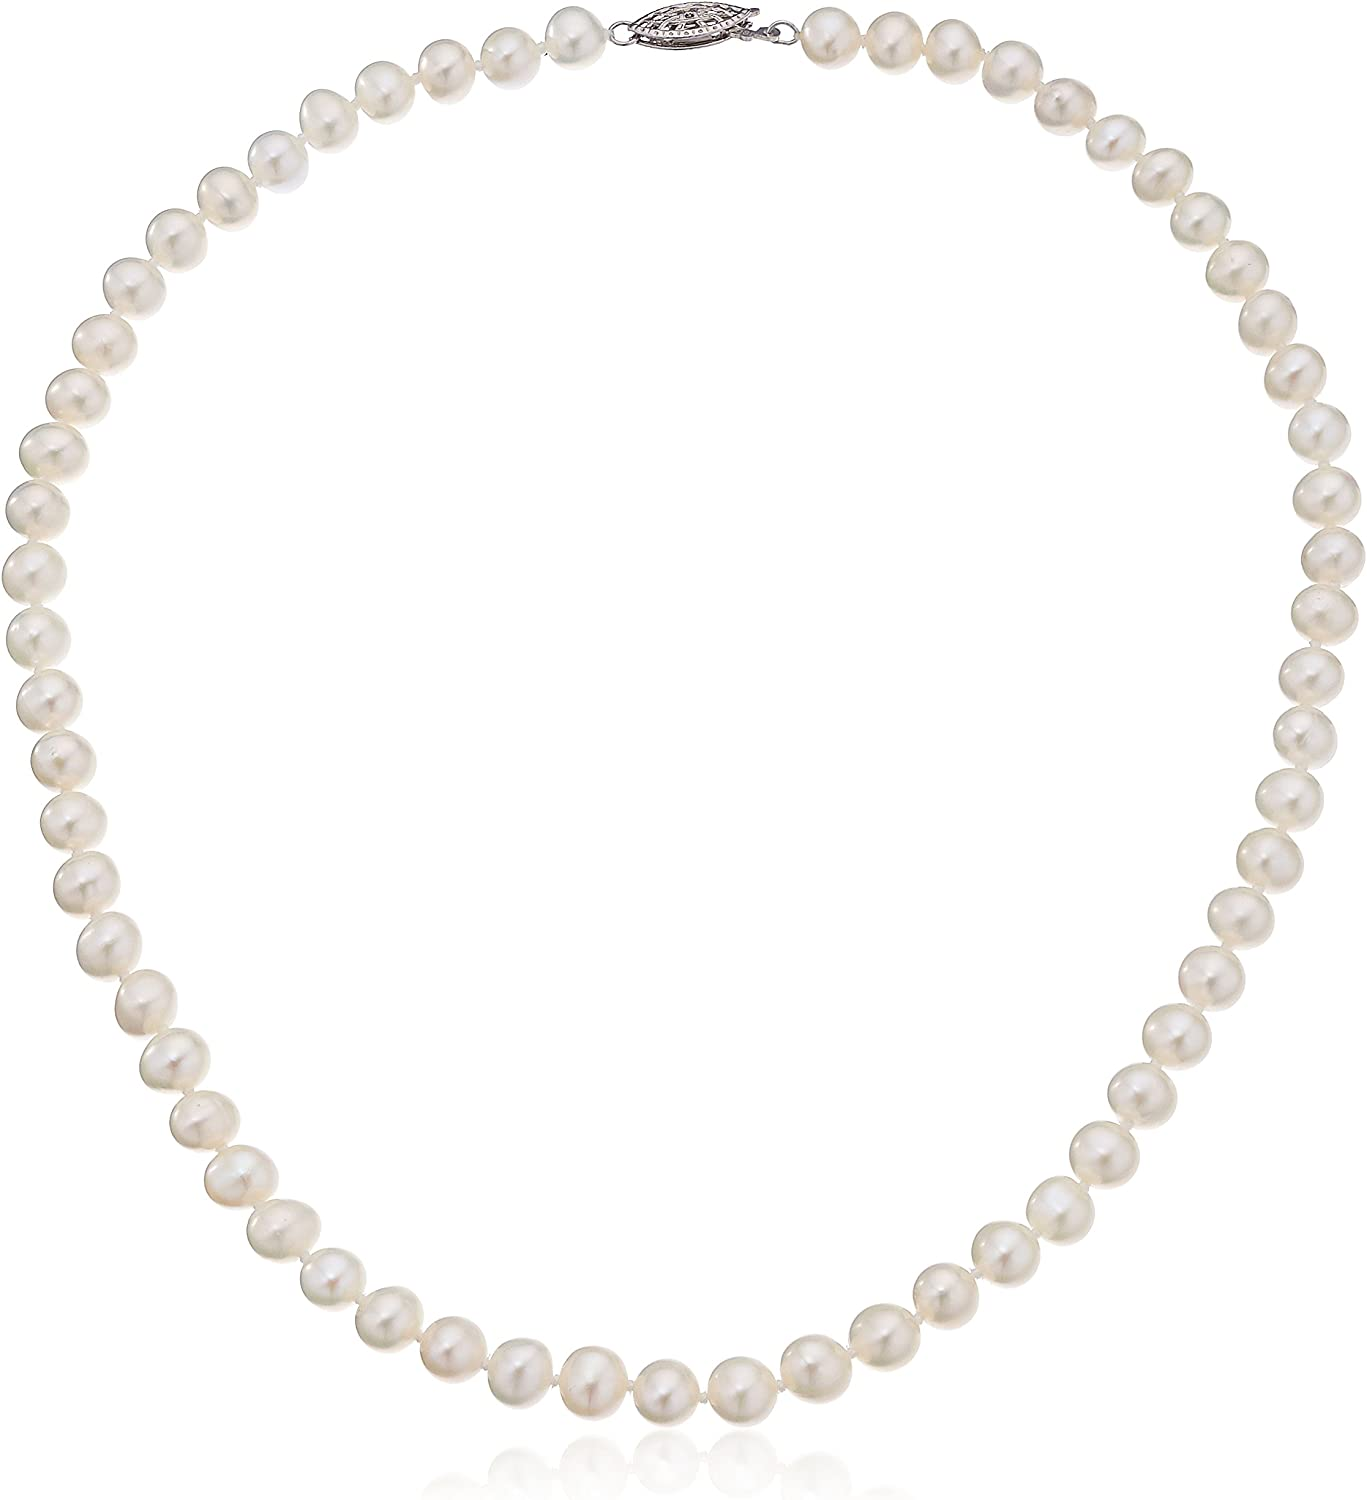 Freshwater Pearl Potato shape knotted Necklace with 925 silver hook Top Quality pearl length 18